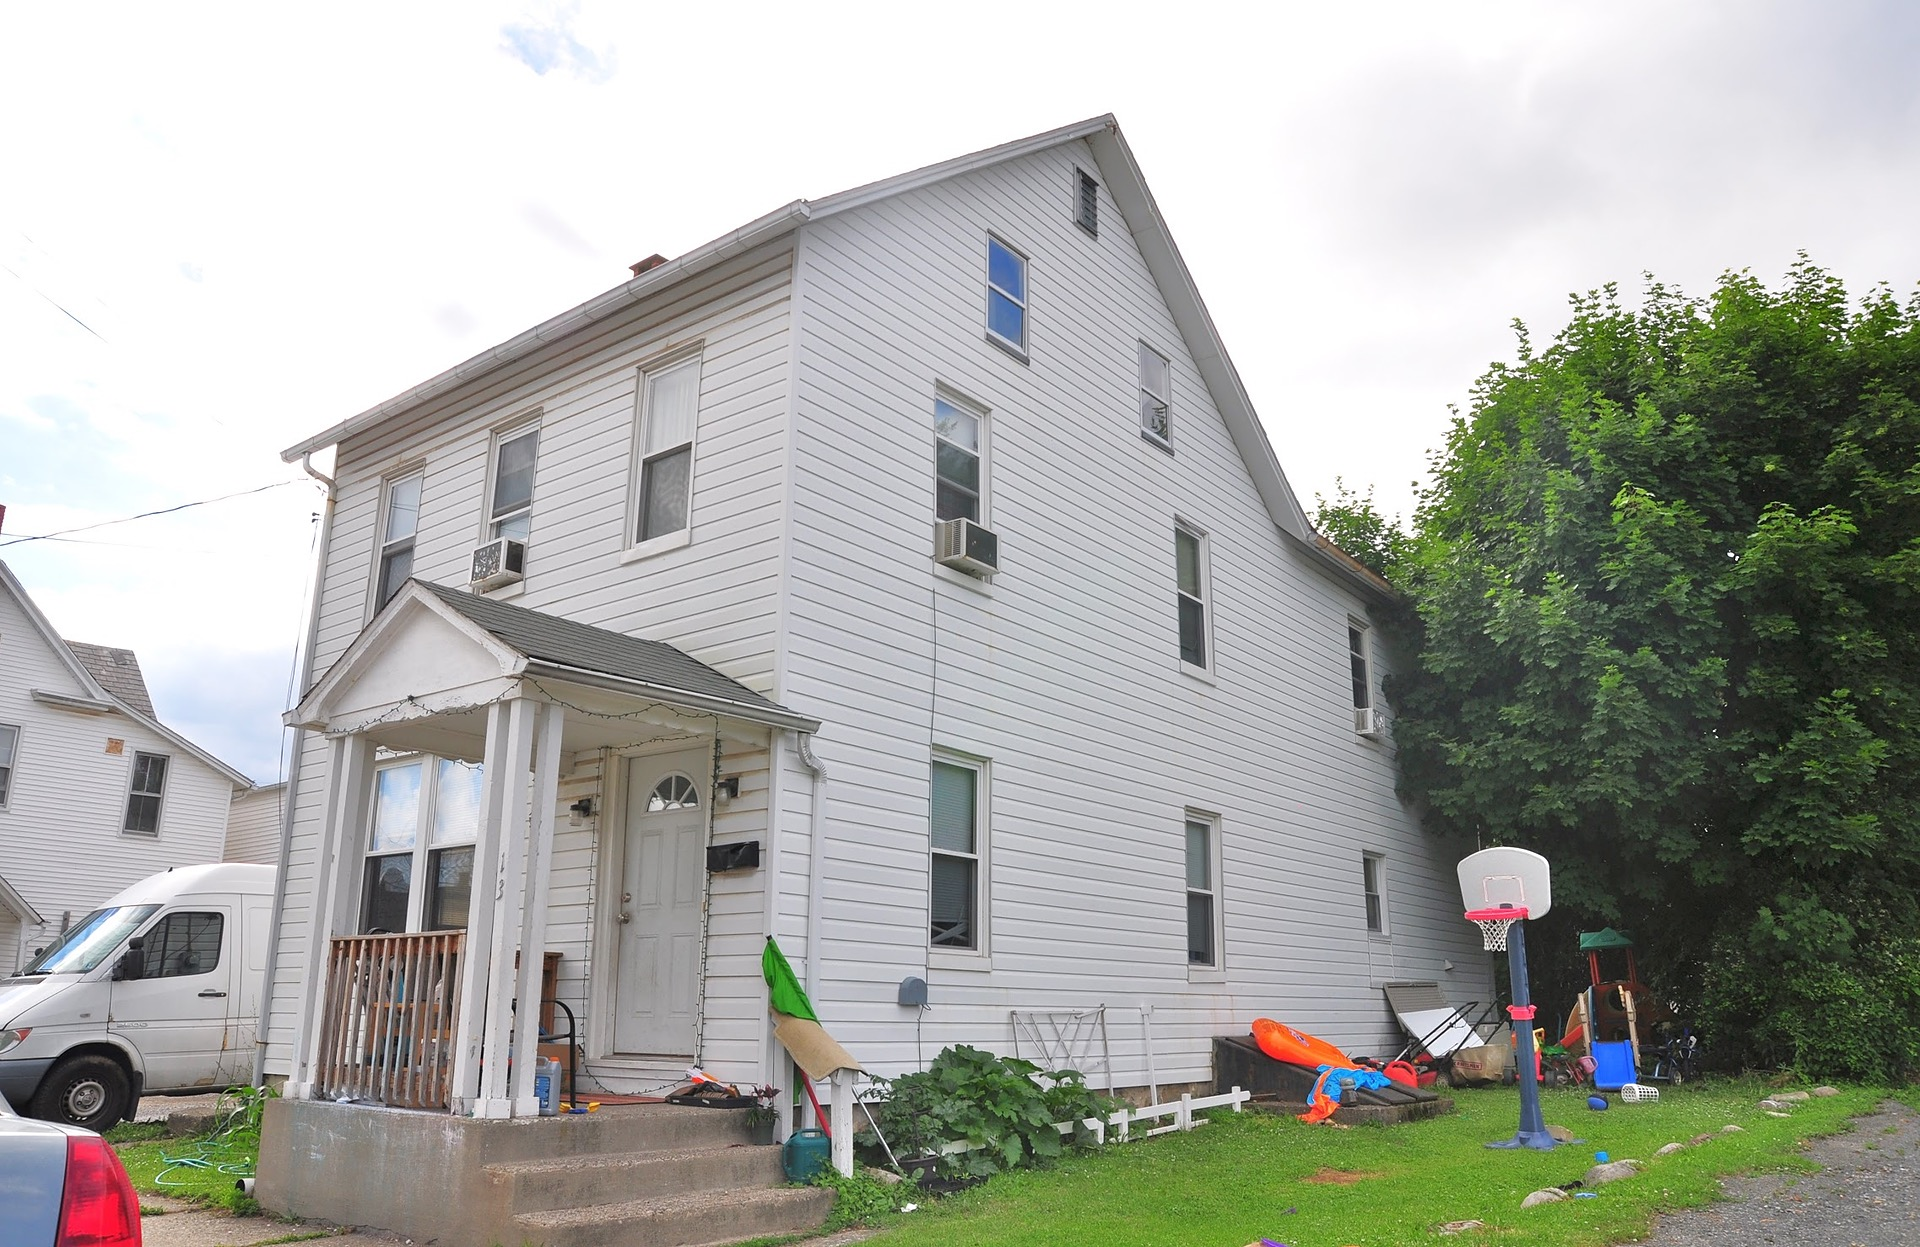 Pen Argyl - 4 Beds 2 Baths $129,900